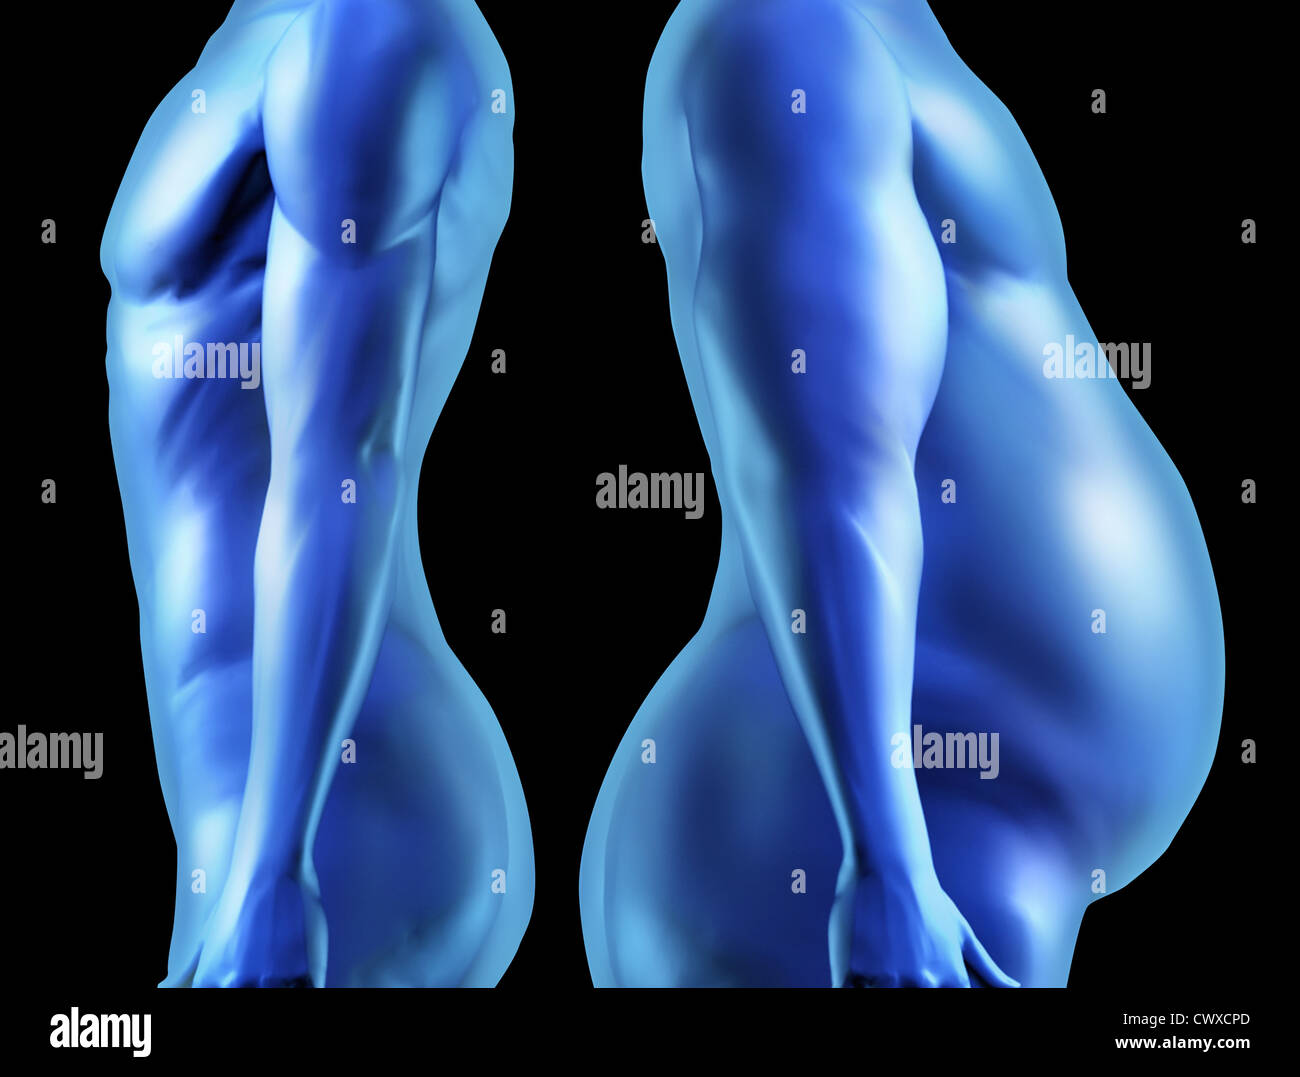 Human Body Shape Comparison With Dieting Weightloss For A Healthy Fit Stock Photo Alamy